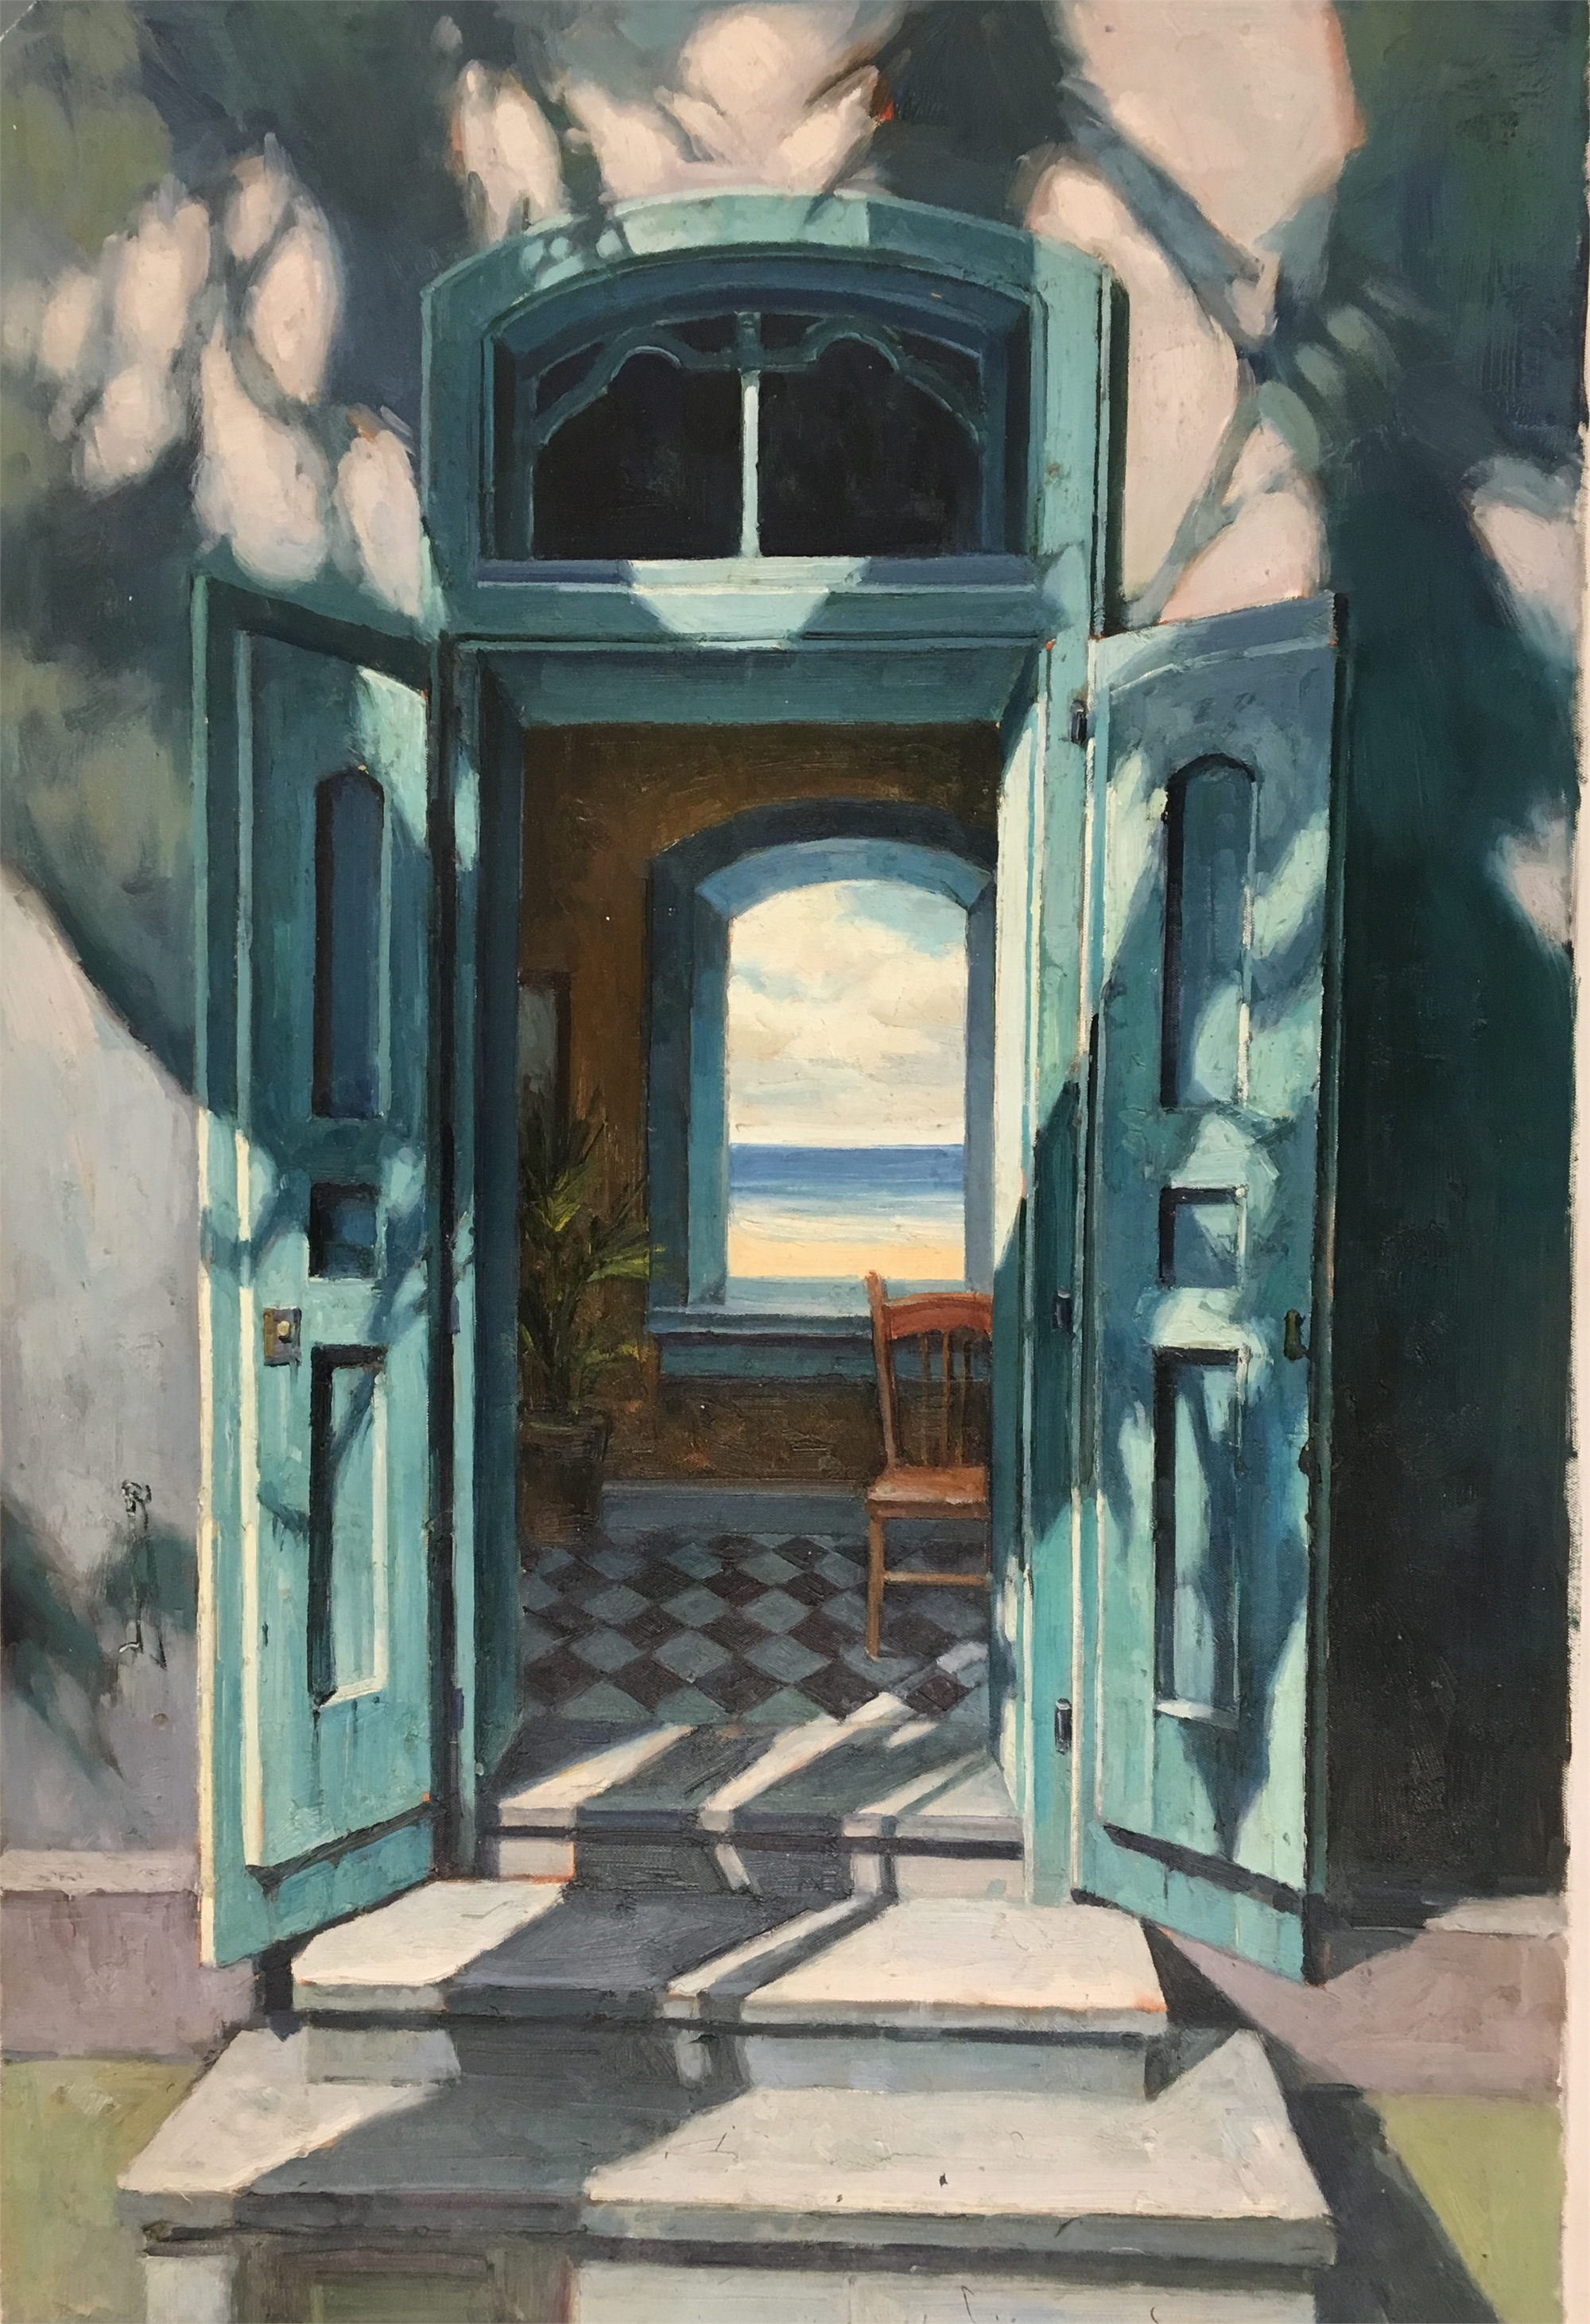 SHADOWS ON THE DOORSTEP by VARIOUS WORKS